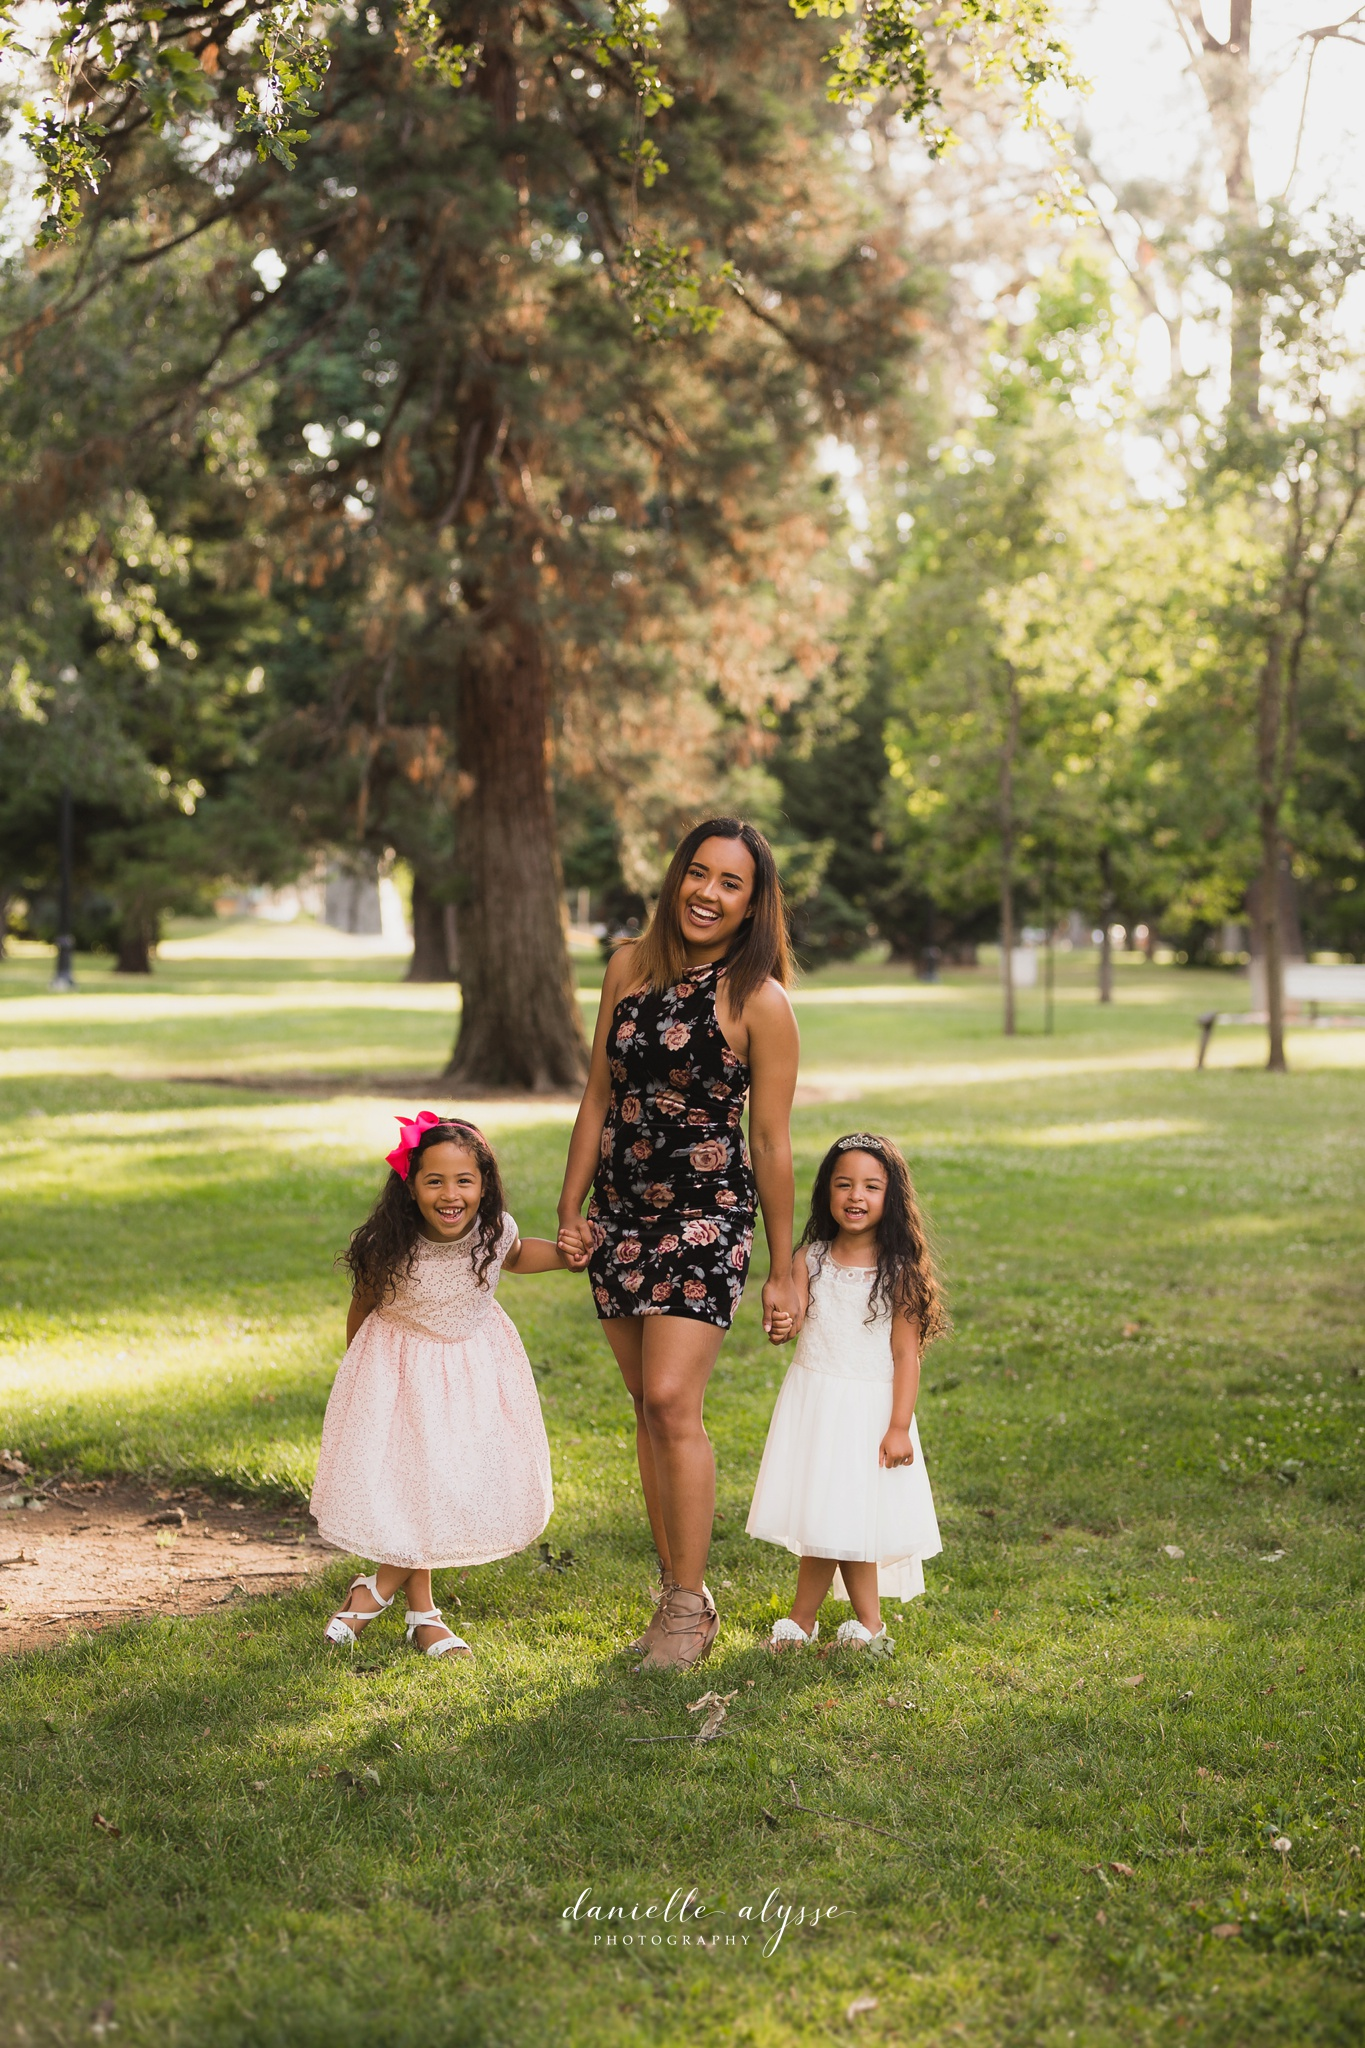 180604_family_senior_portrait_eresvey_sacramento_state_capitol_california_danielle_alysse_photography_blog_2_4_WEB.jpg